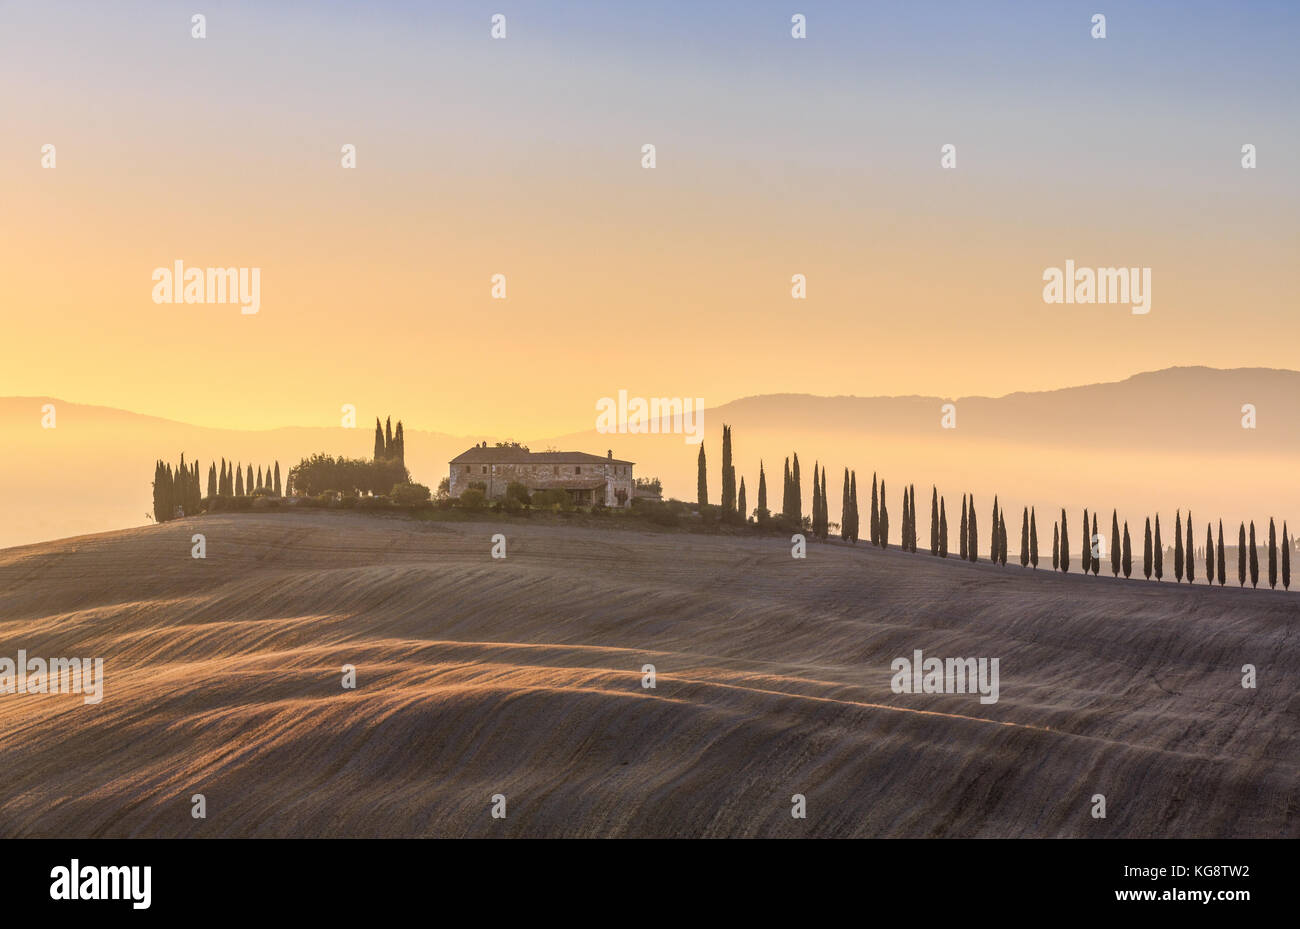 Tuscan landscape with cypress trees and farmstead at sunrise, dawn, San Quirico d'Orcia, Val d'Orcia, Tuscany, - Stock Image